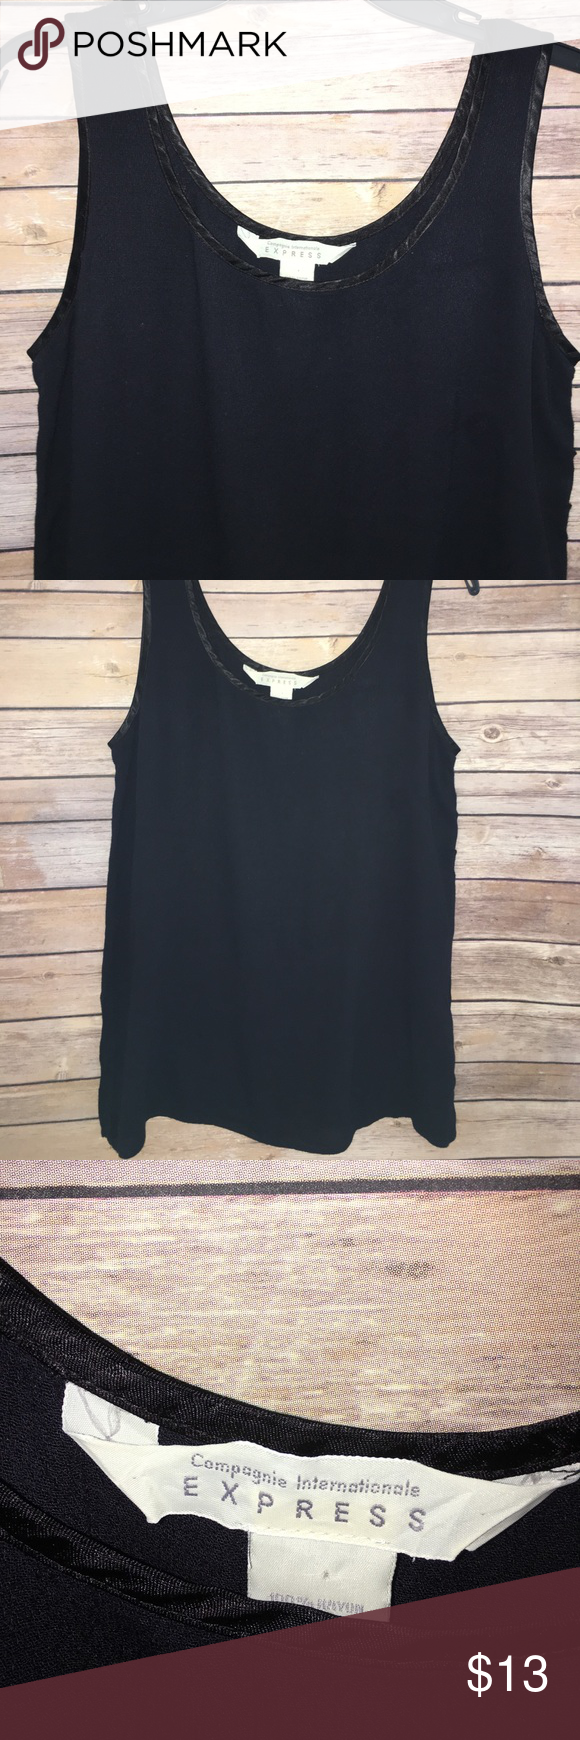 Express sleeveless navy blouse Navy blue sleeveless top. Has side slots and silky trim. Express Tops Blouses